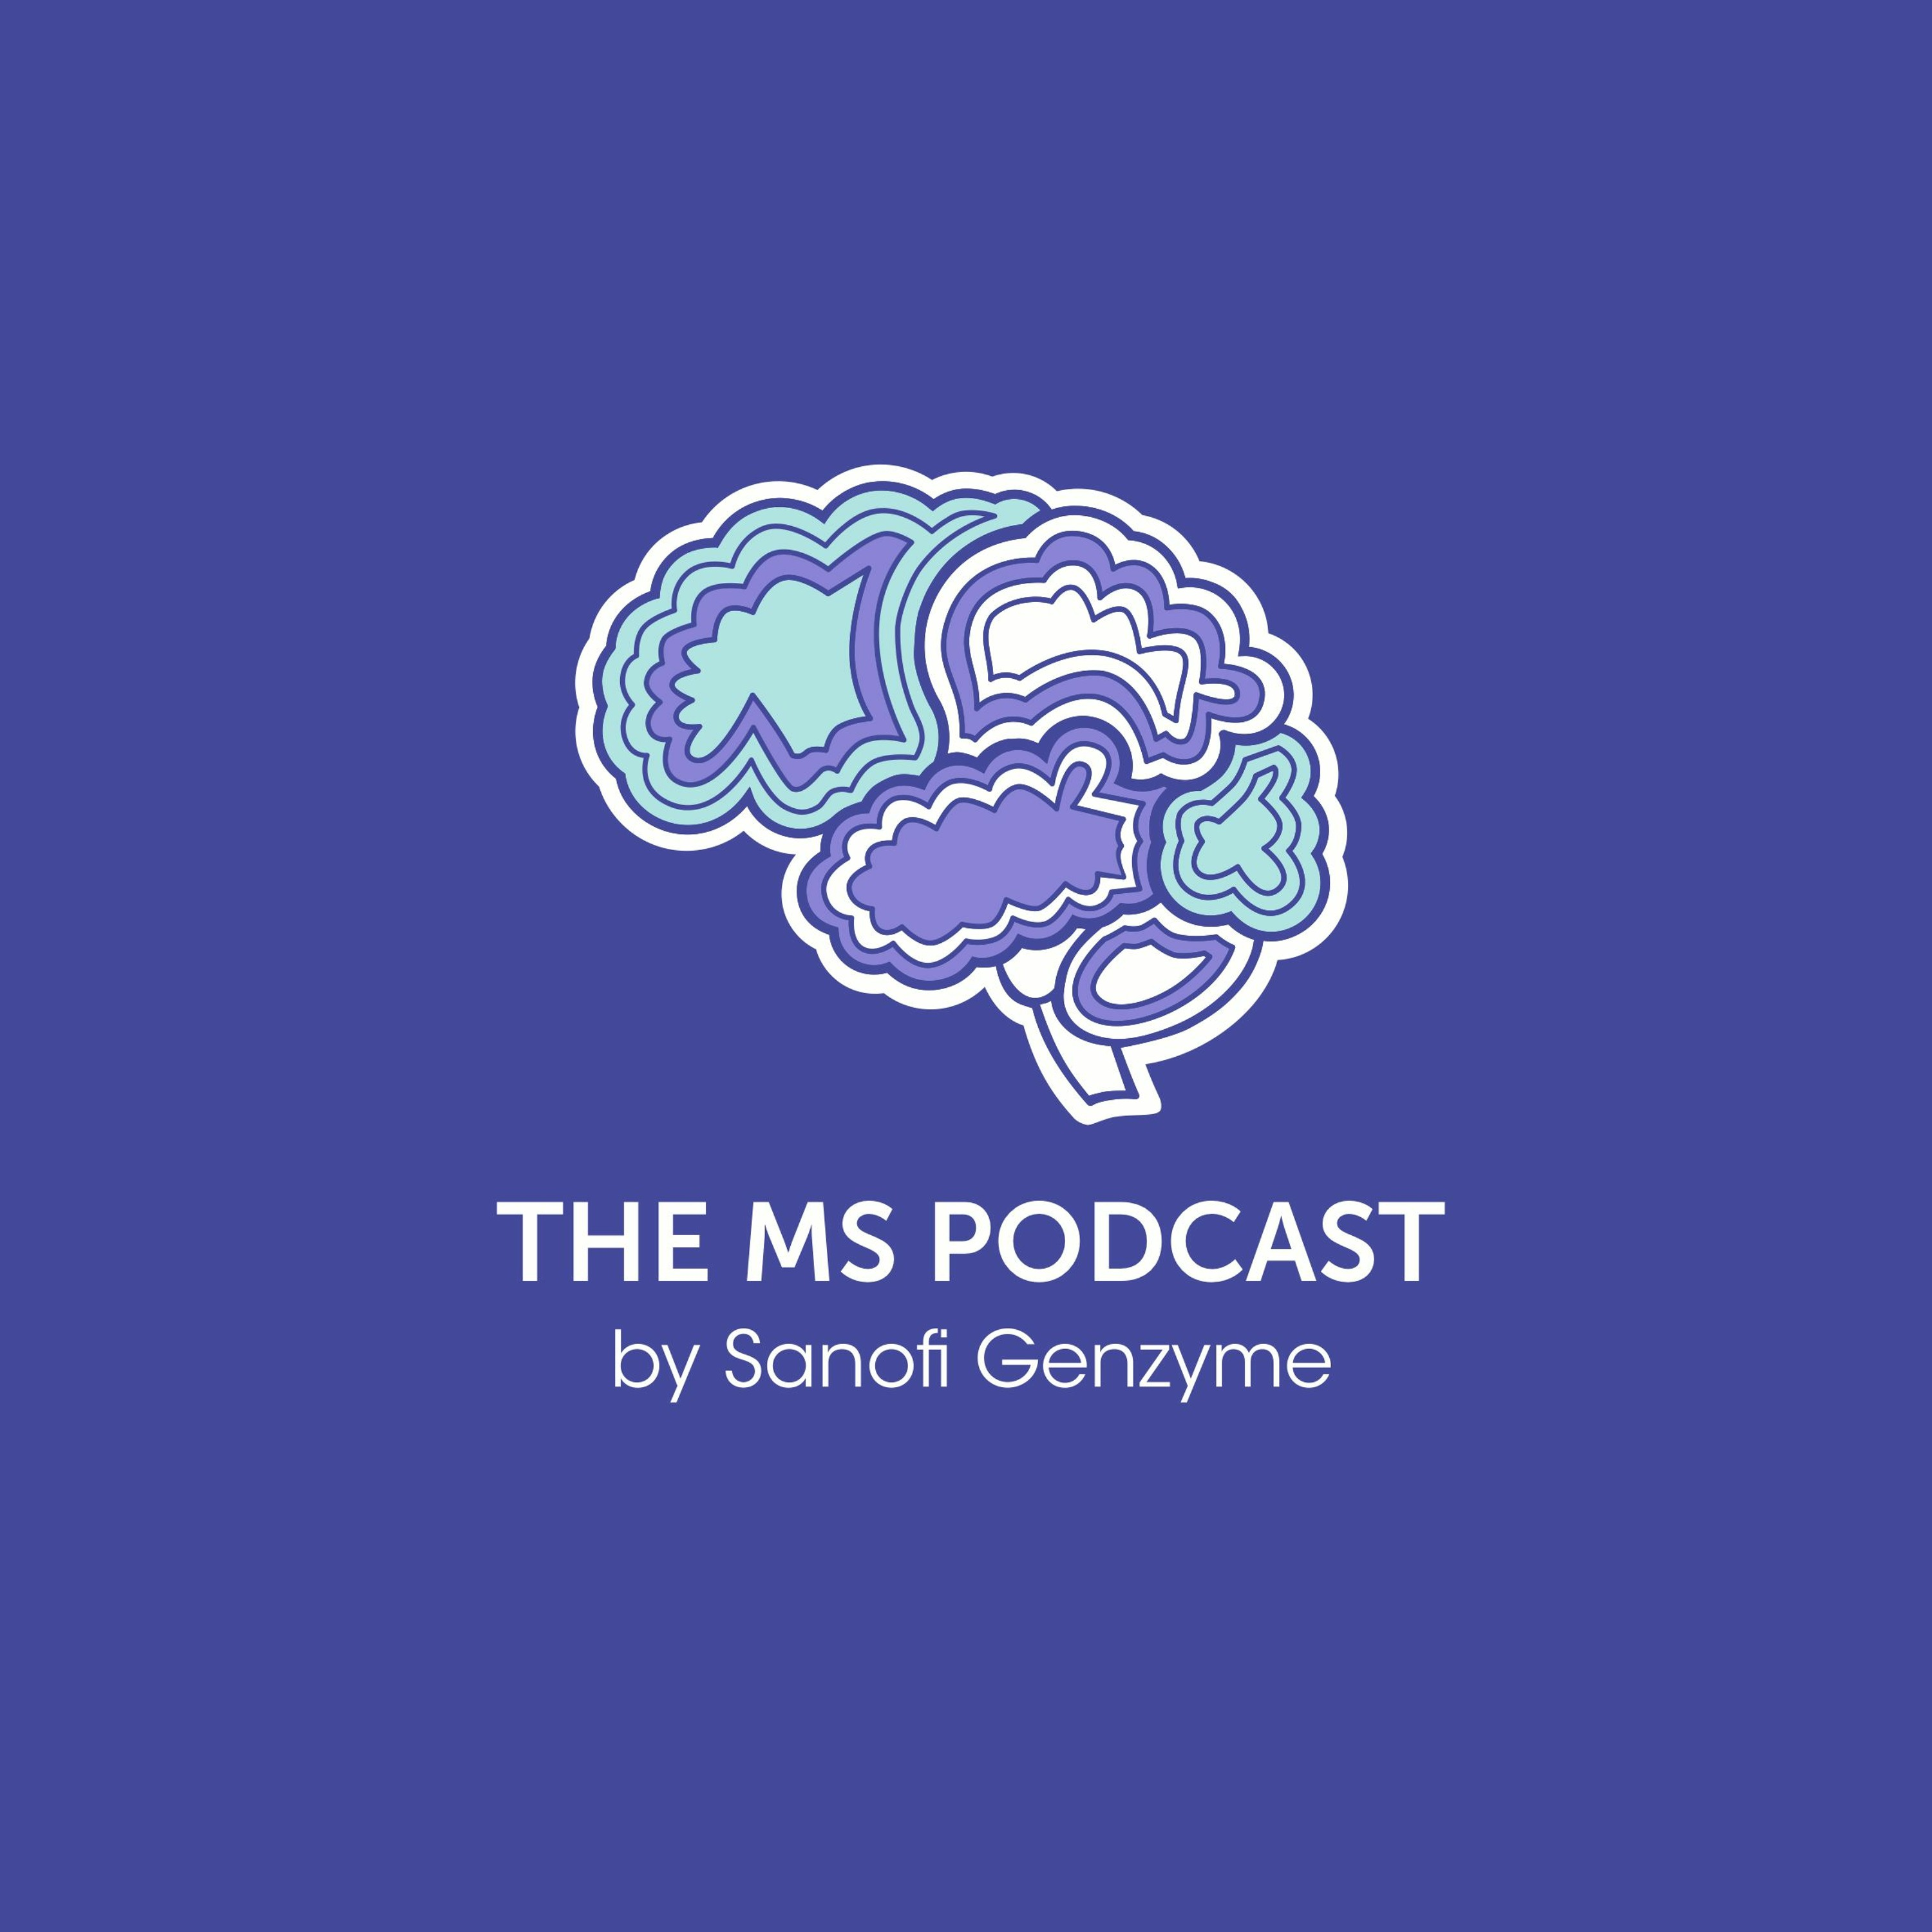 The reason for MS – beyond focal inflammation